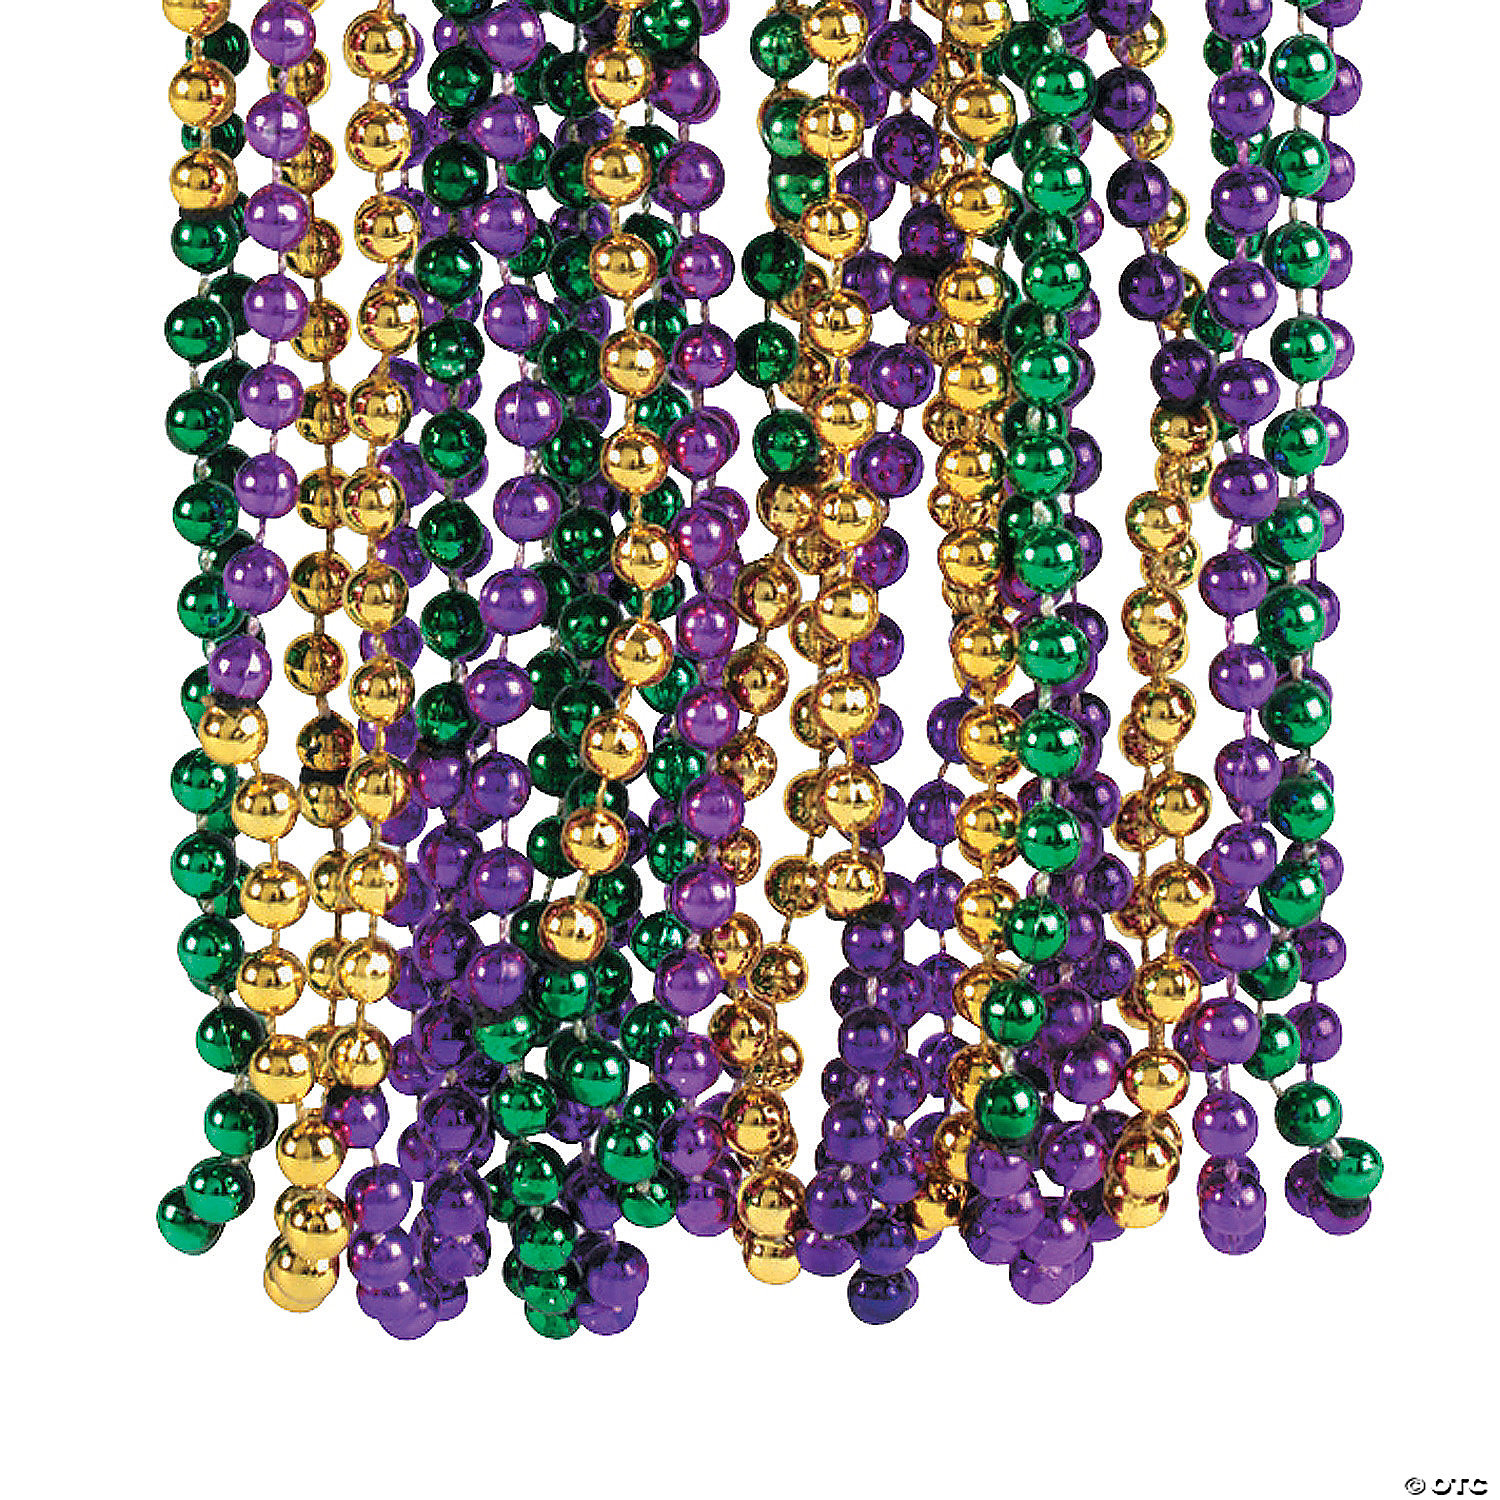 mardi gras carnival jciv b beads by flickr photos